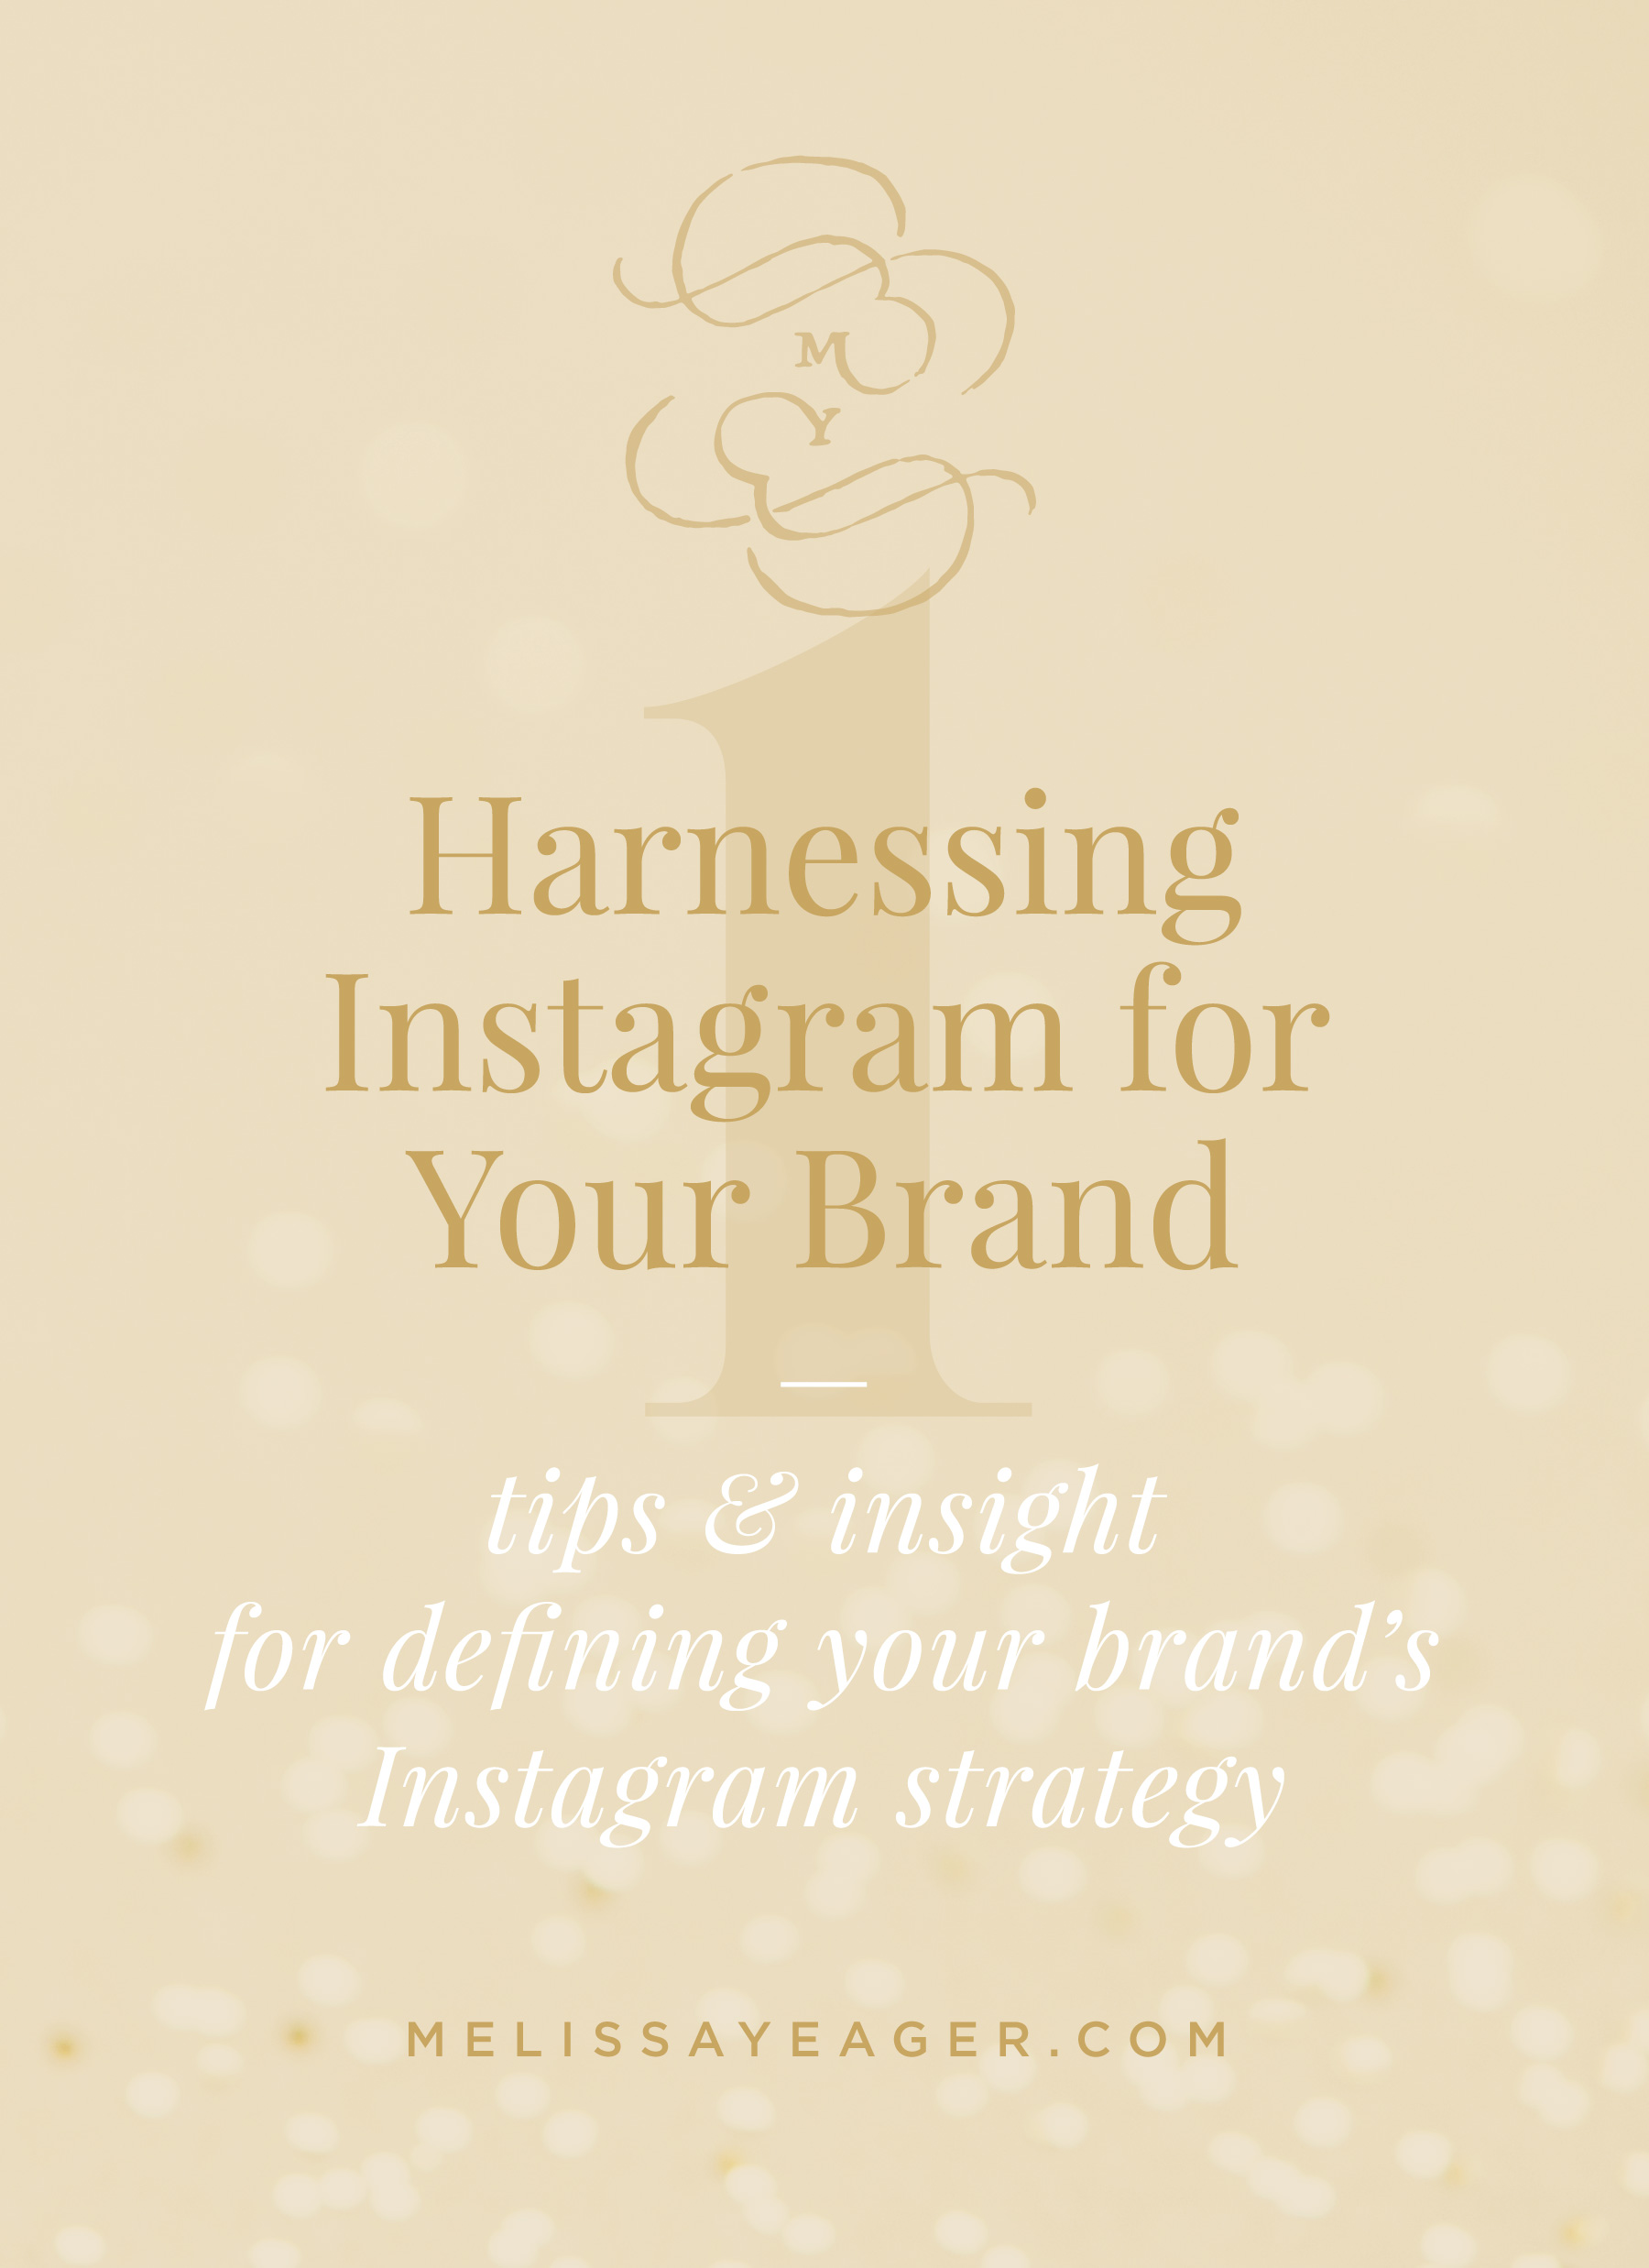 Harnessing Instagram for Your Brand - tips & insight for defining your brand's Instagram strategy - Melissa Yeager